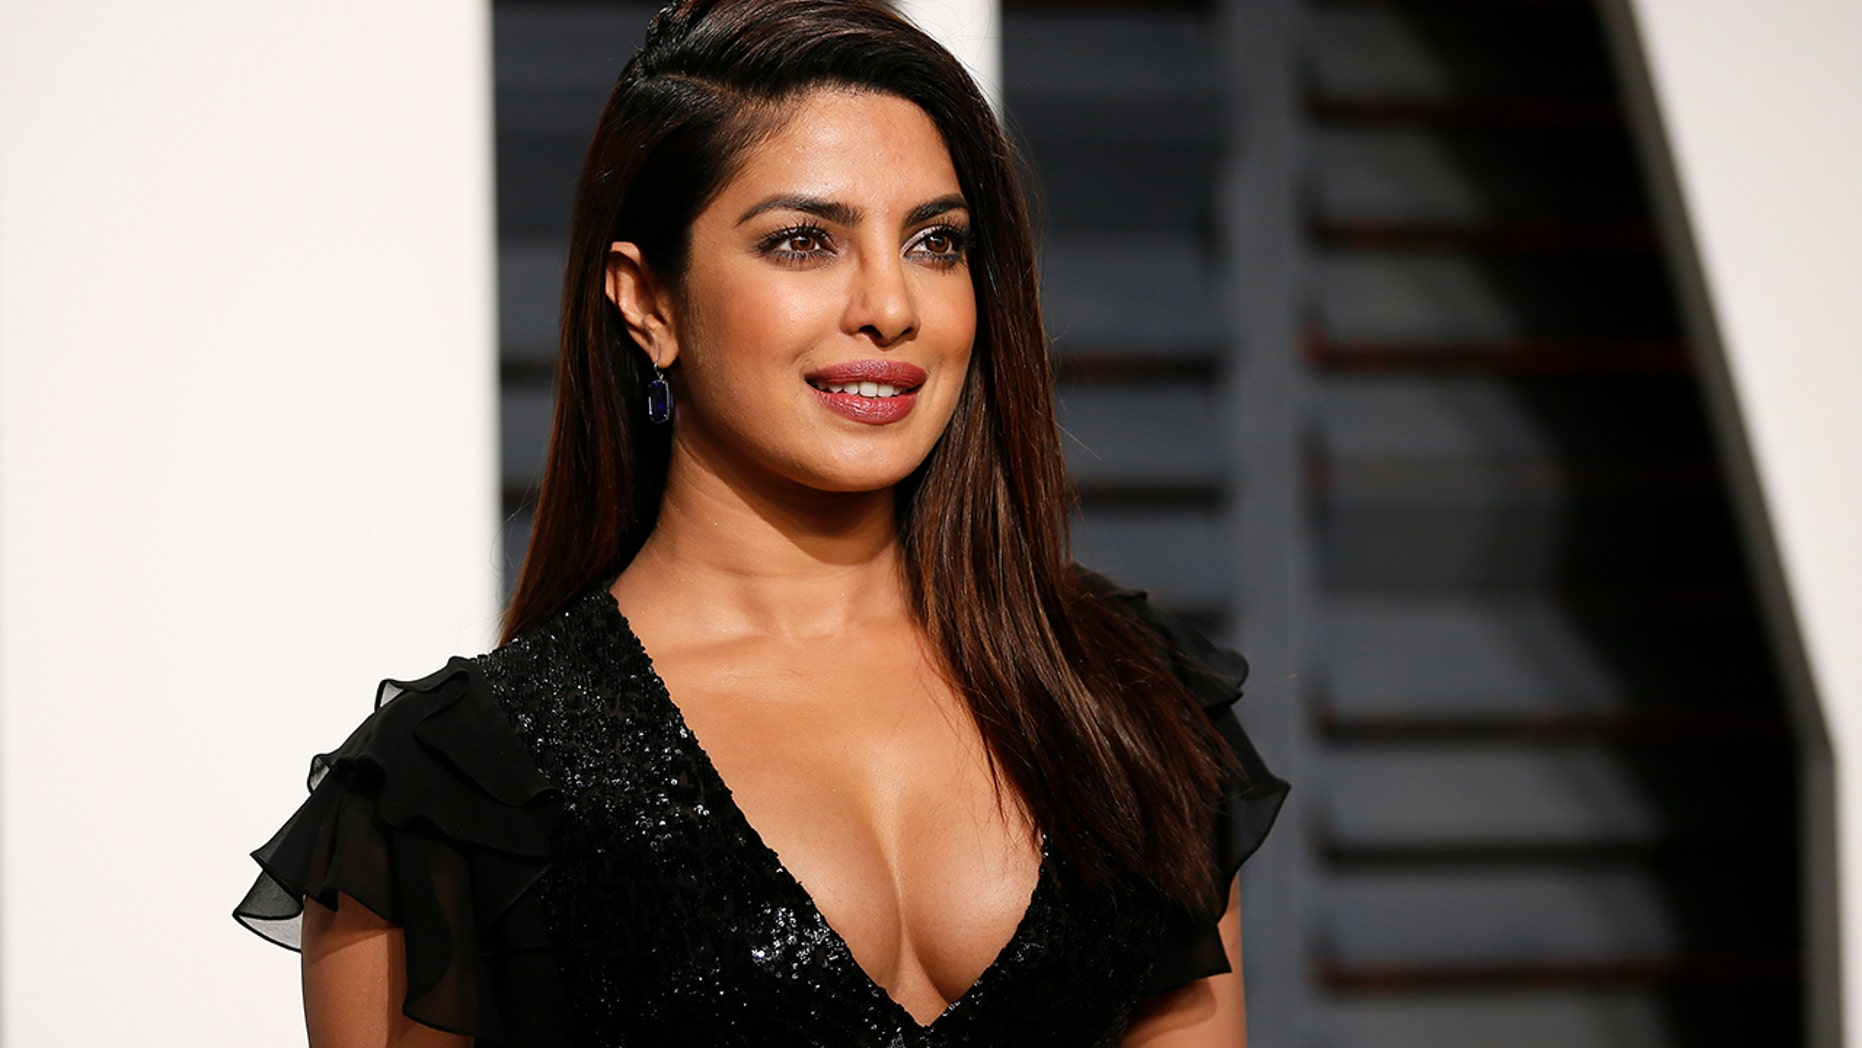 Priyanka Chopra admits she regrets once endorsing a skin-lightening cream